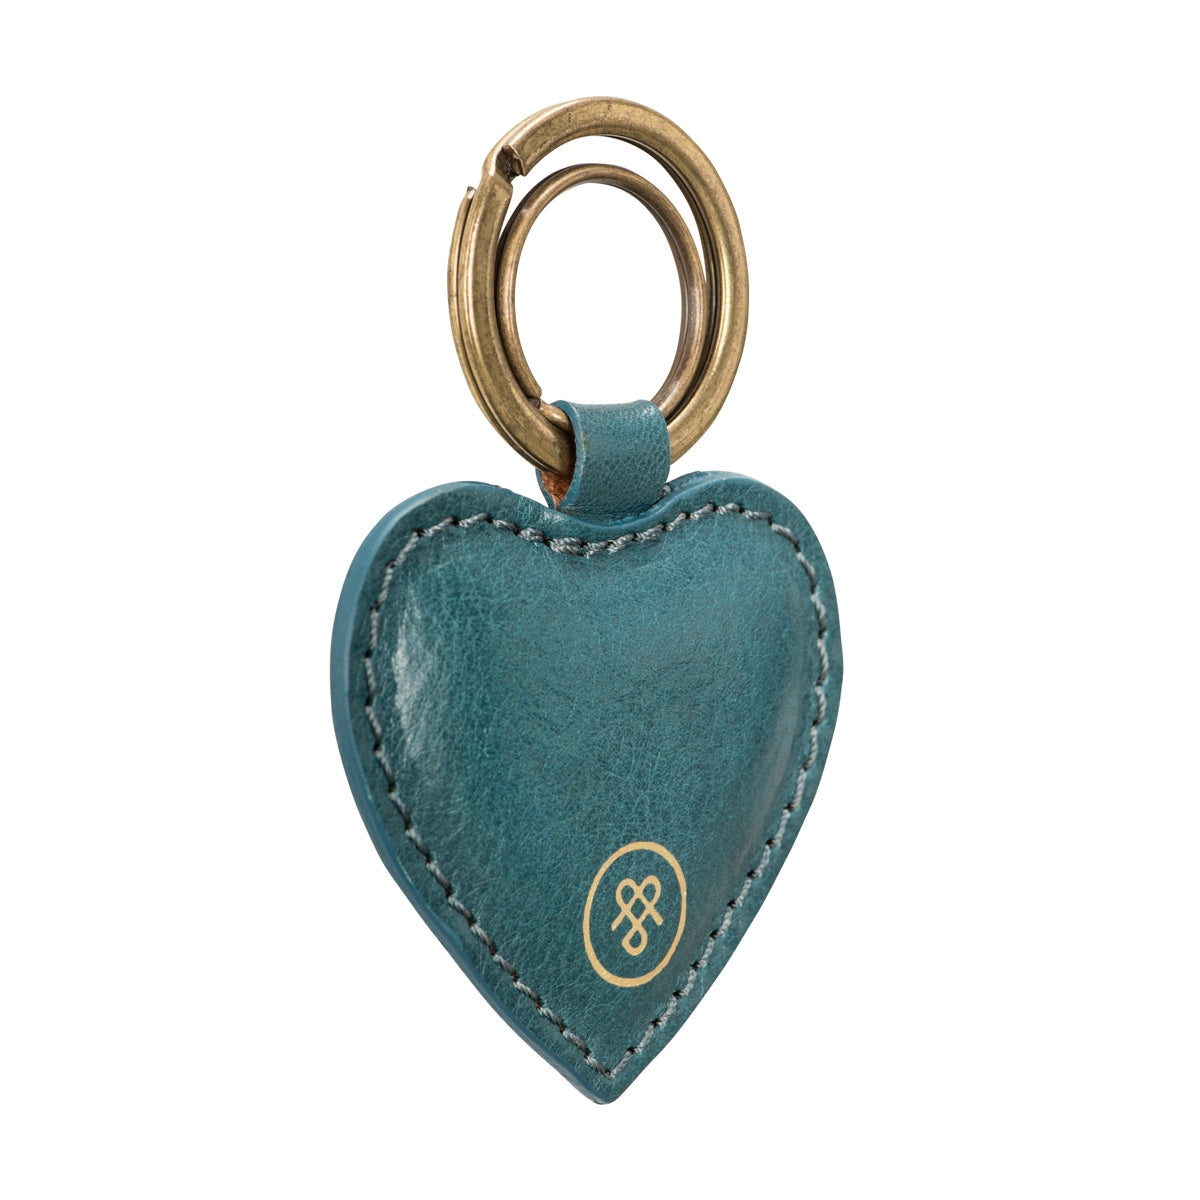 Image 2 of the 'Mimi' Leather Heart Key Ring